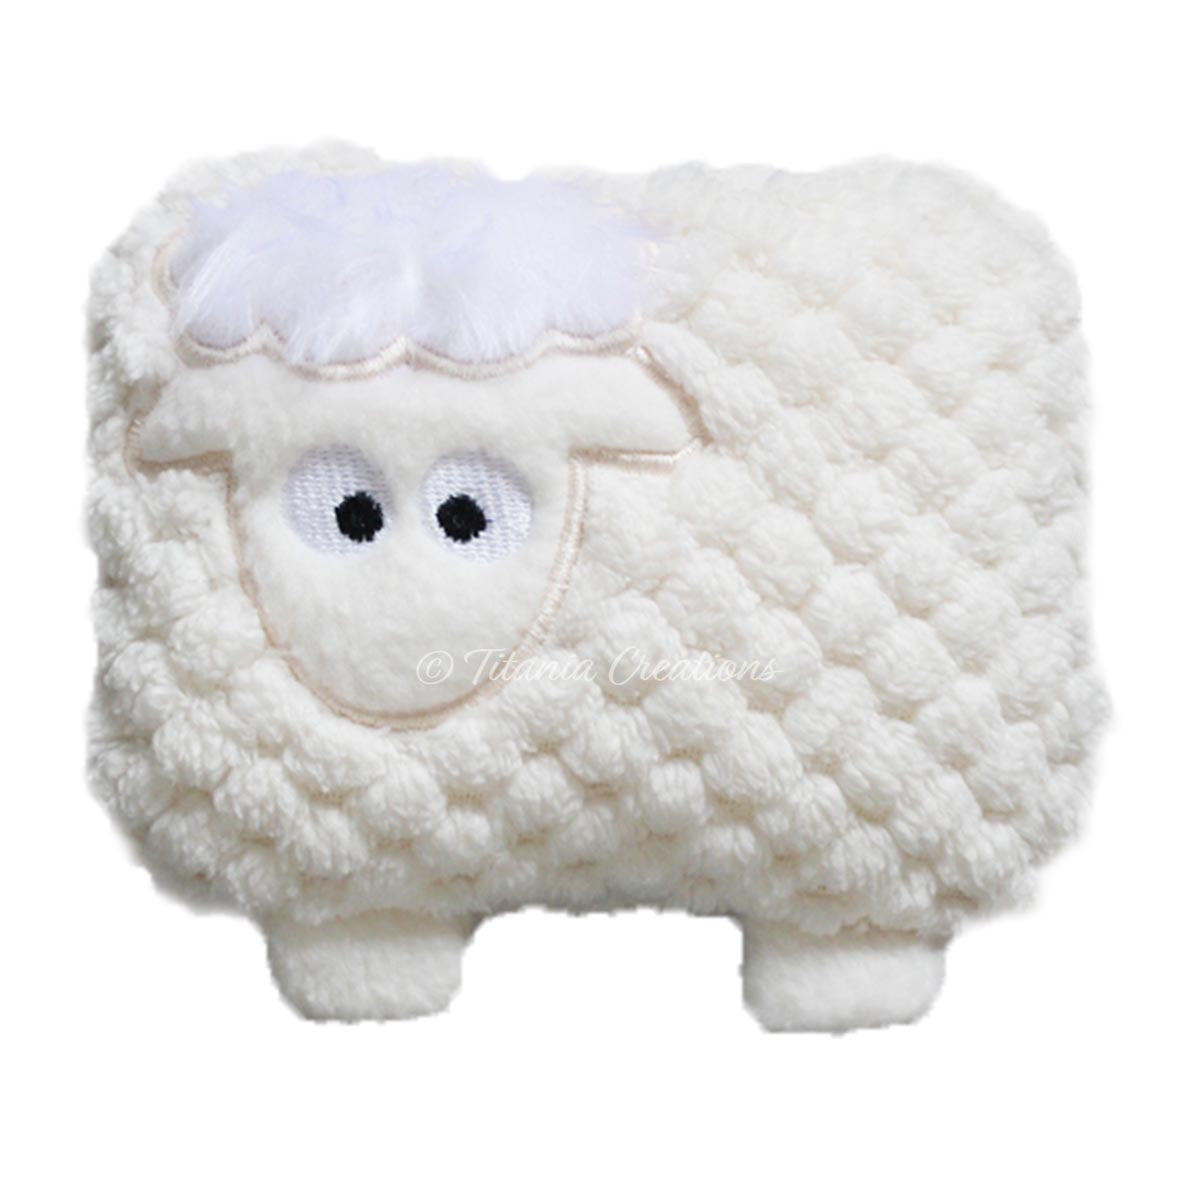 ITH Sheep Stuffie 4x4 5x7 6x10 8x12